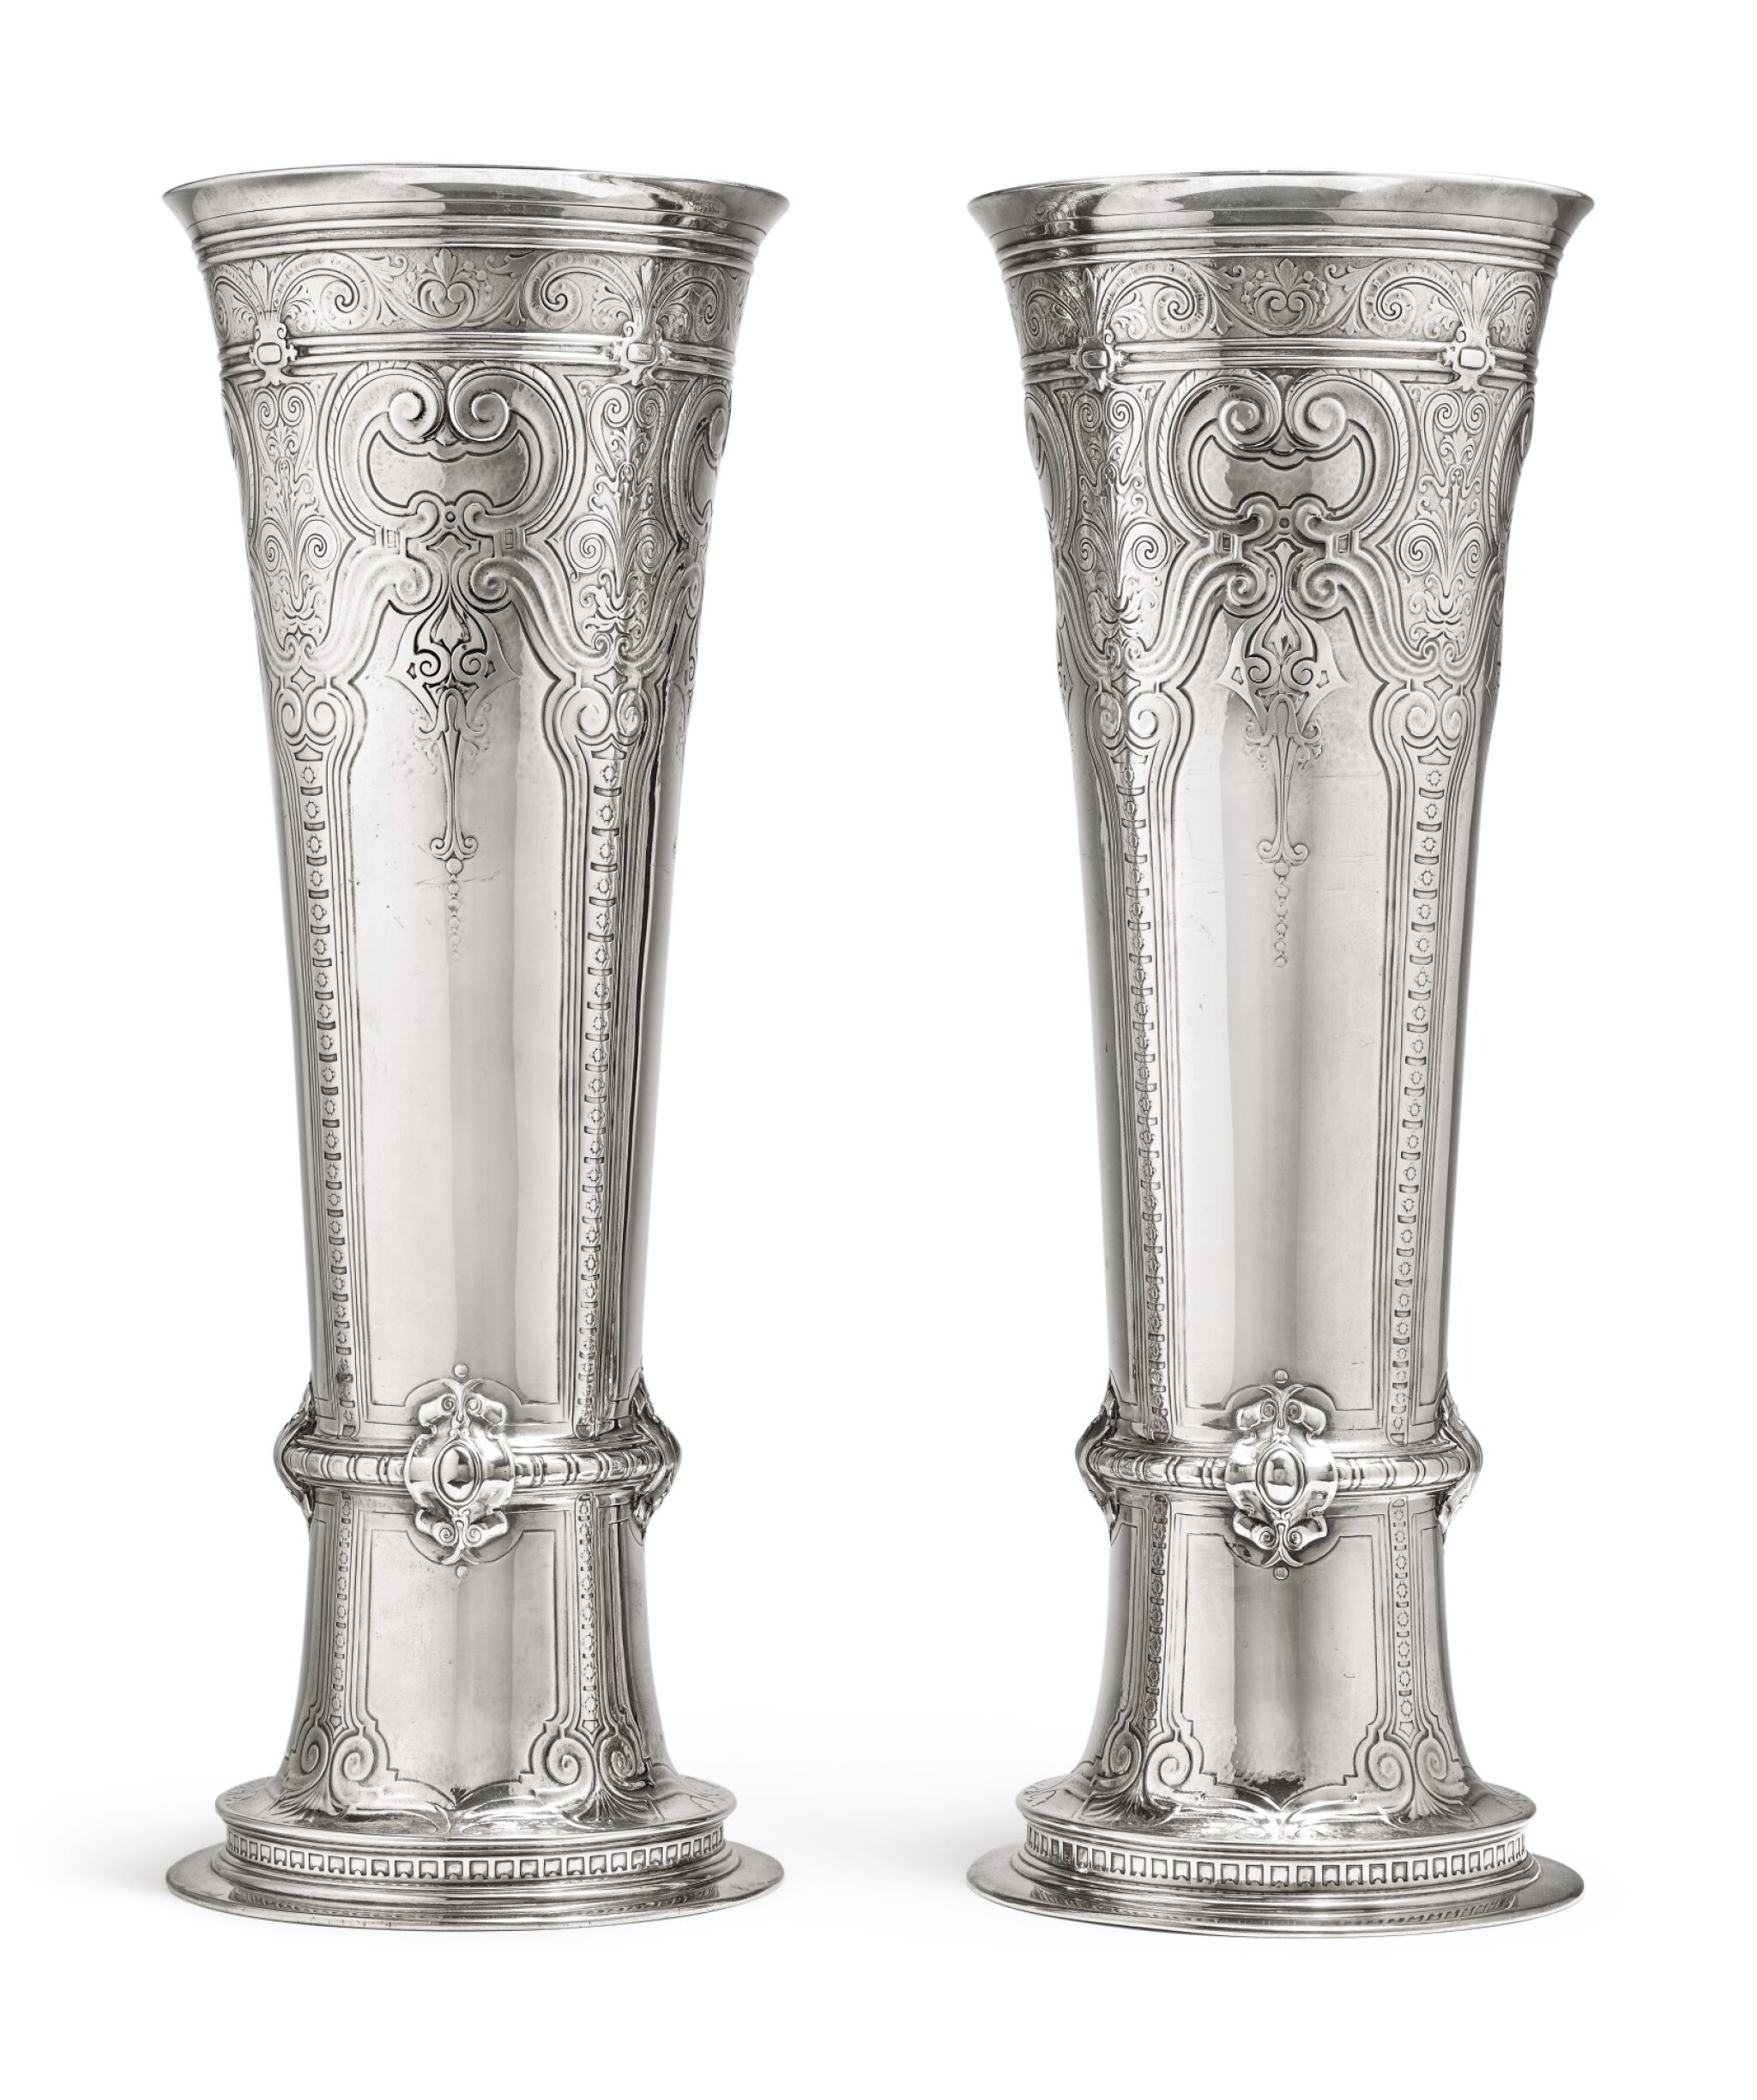 View full screen - View 1 of Lot 431. A Massive Pair of American Silver Tall Vases, Tiffany & Co., New York, circa 1909.